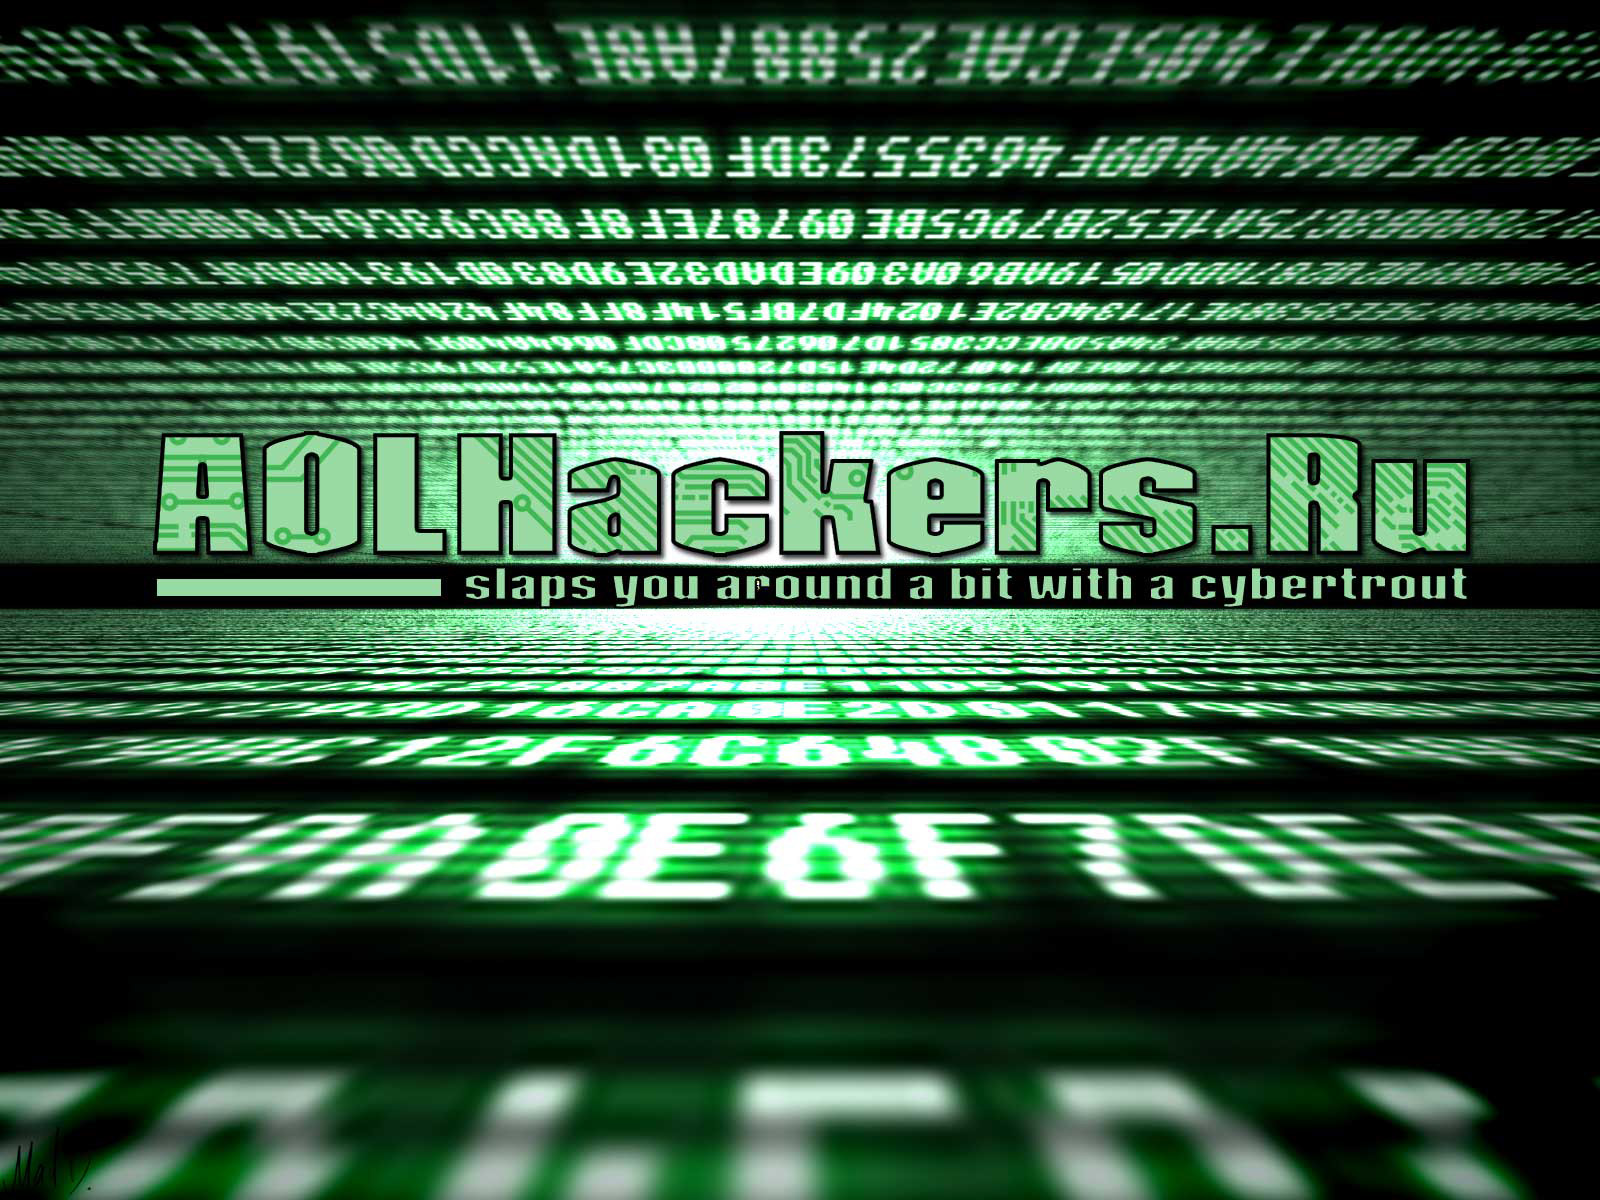 aolhackers